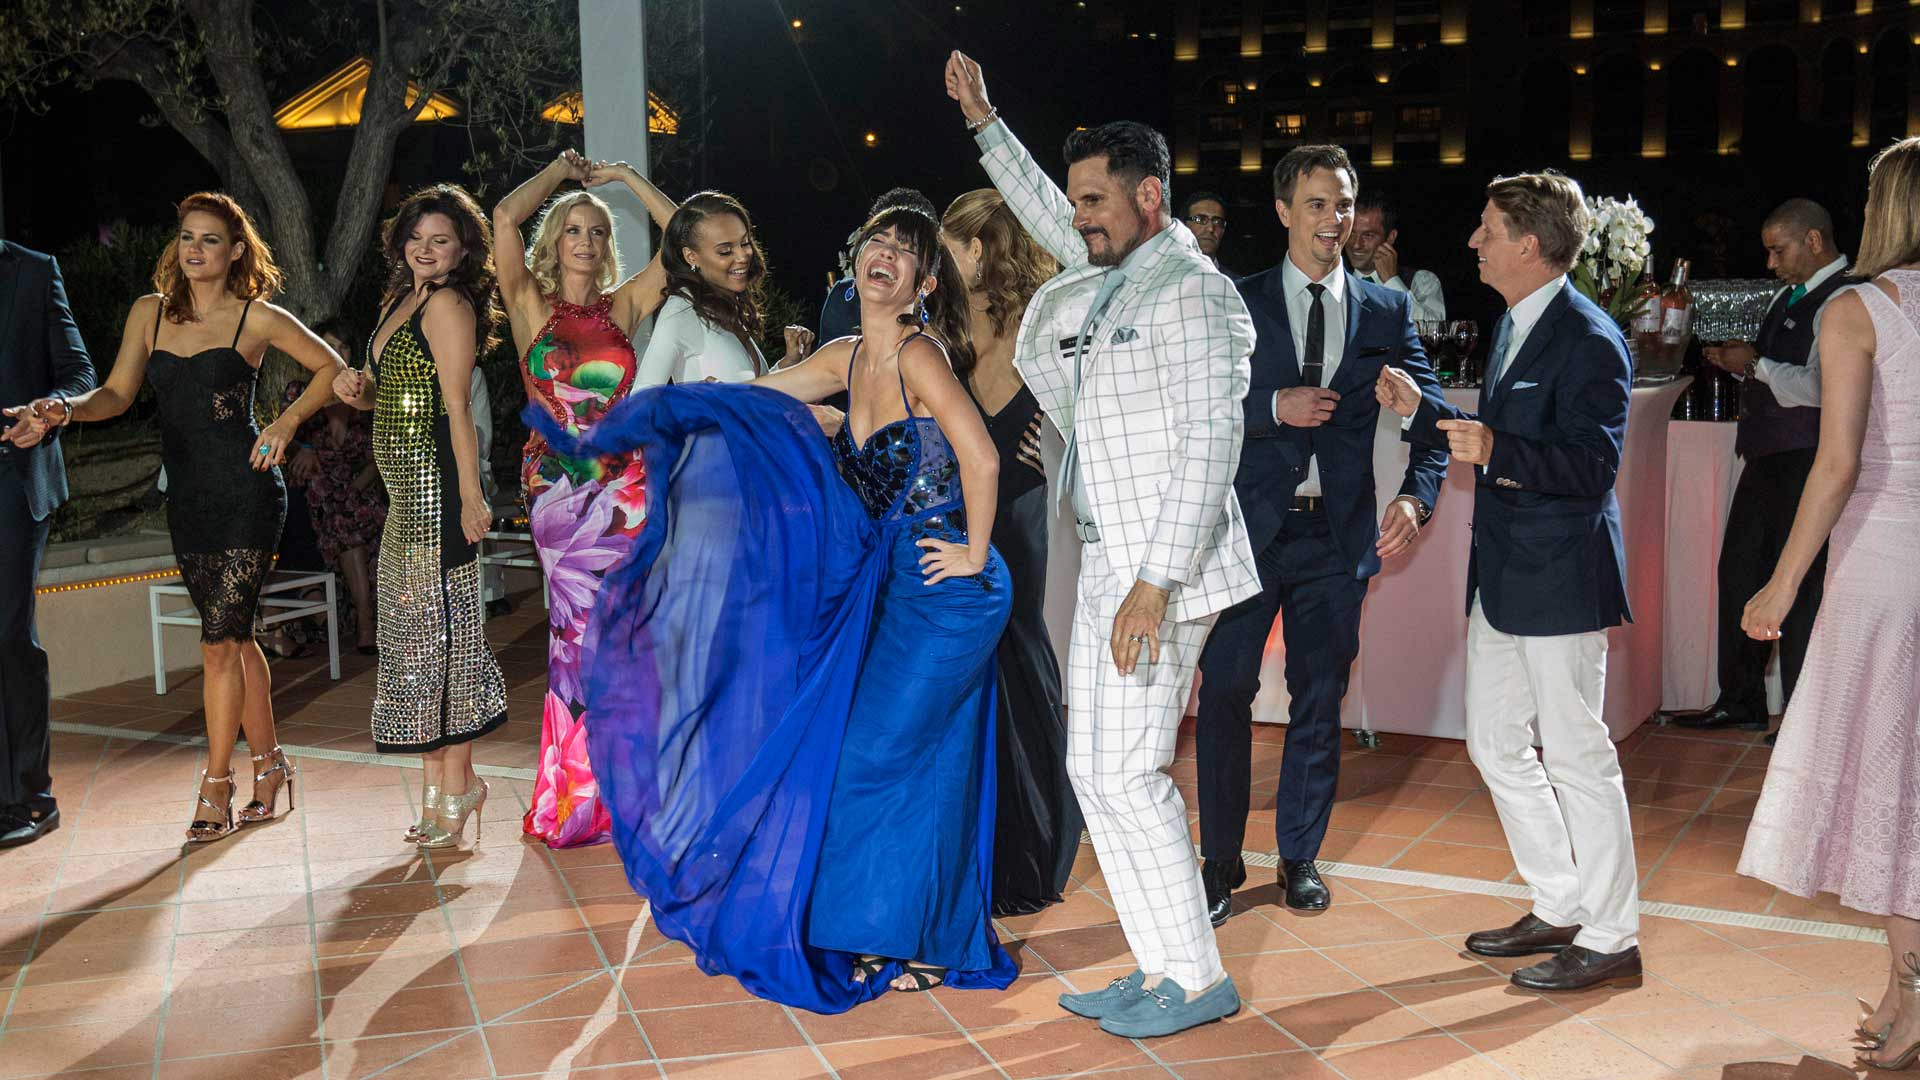 The cast of B&B cut loose when they hit the dance floor.